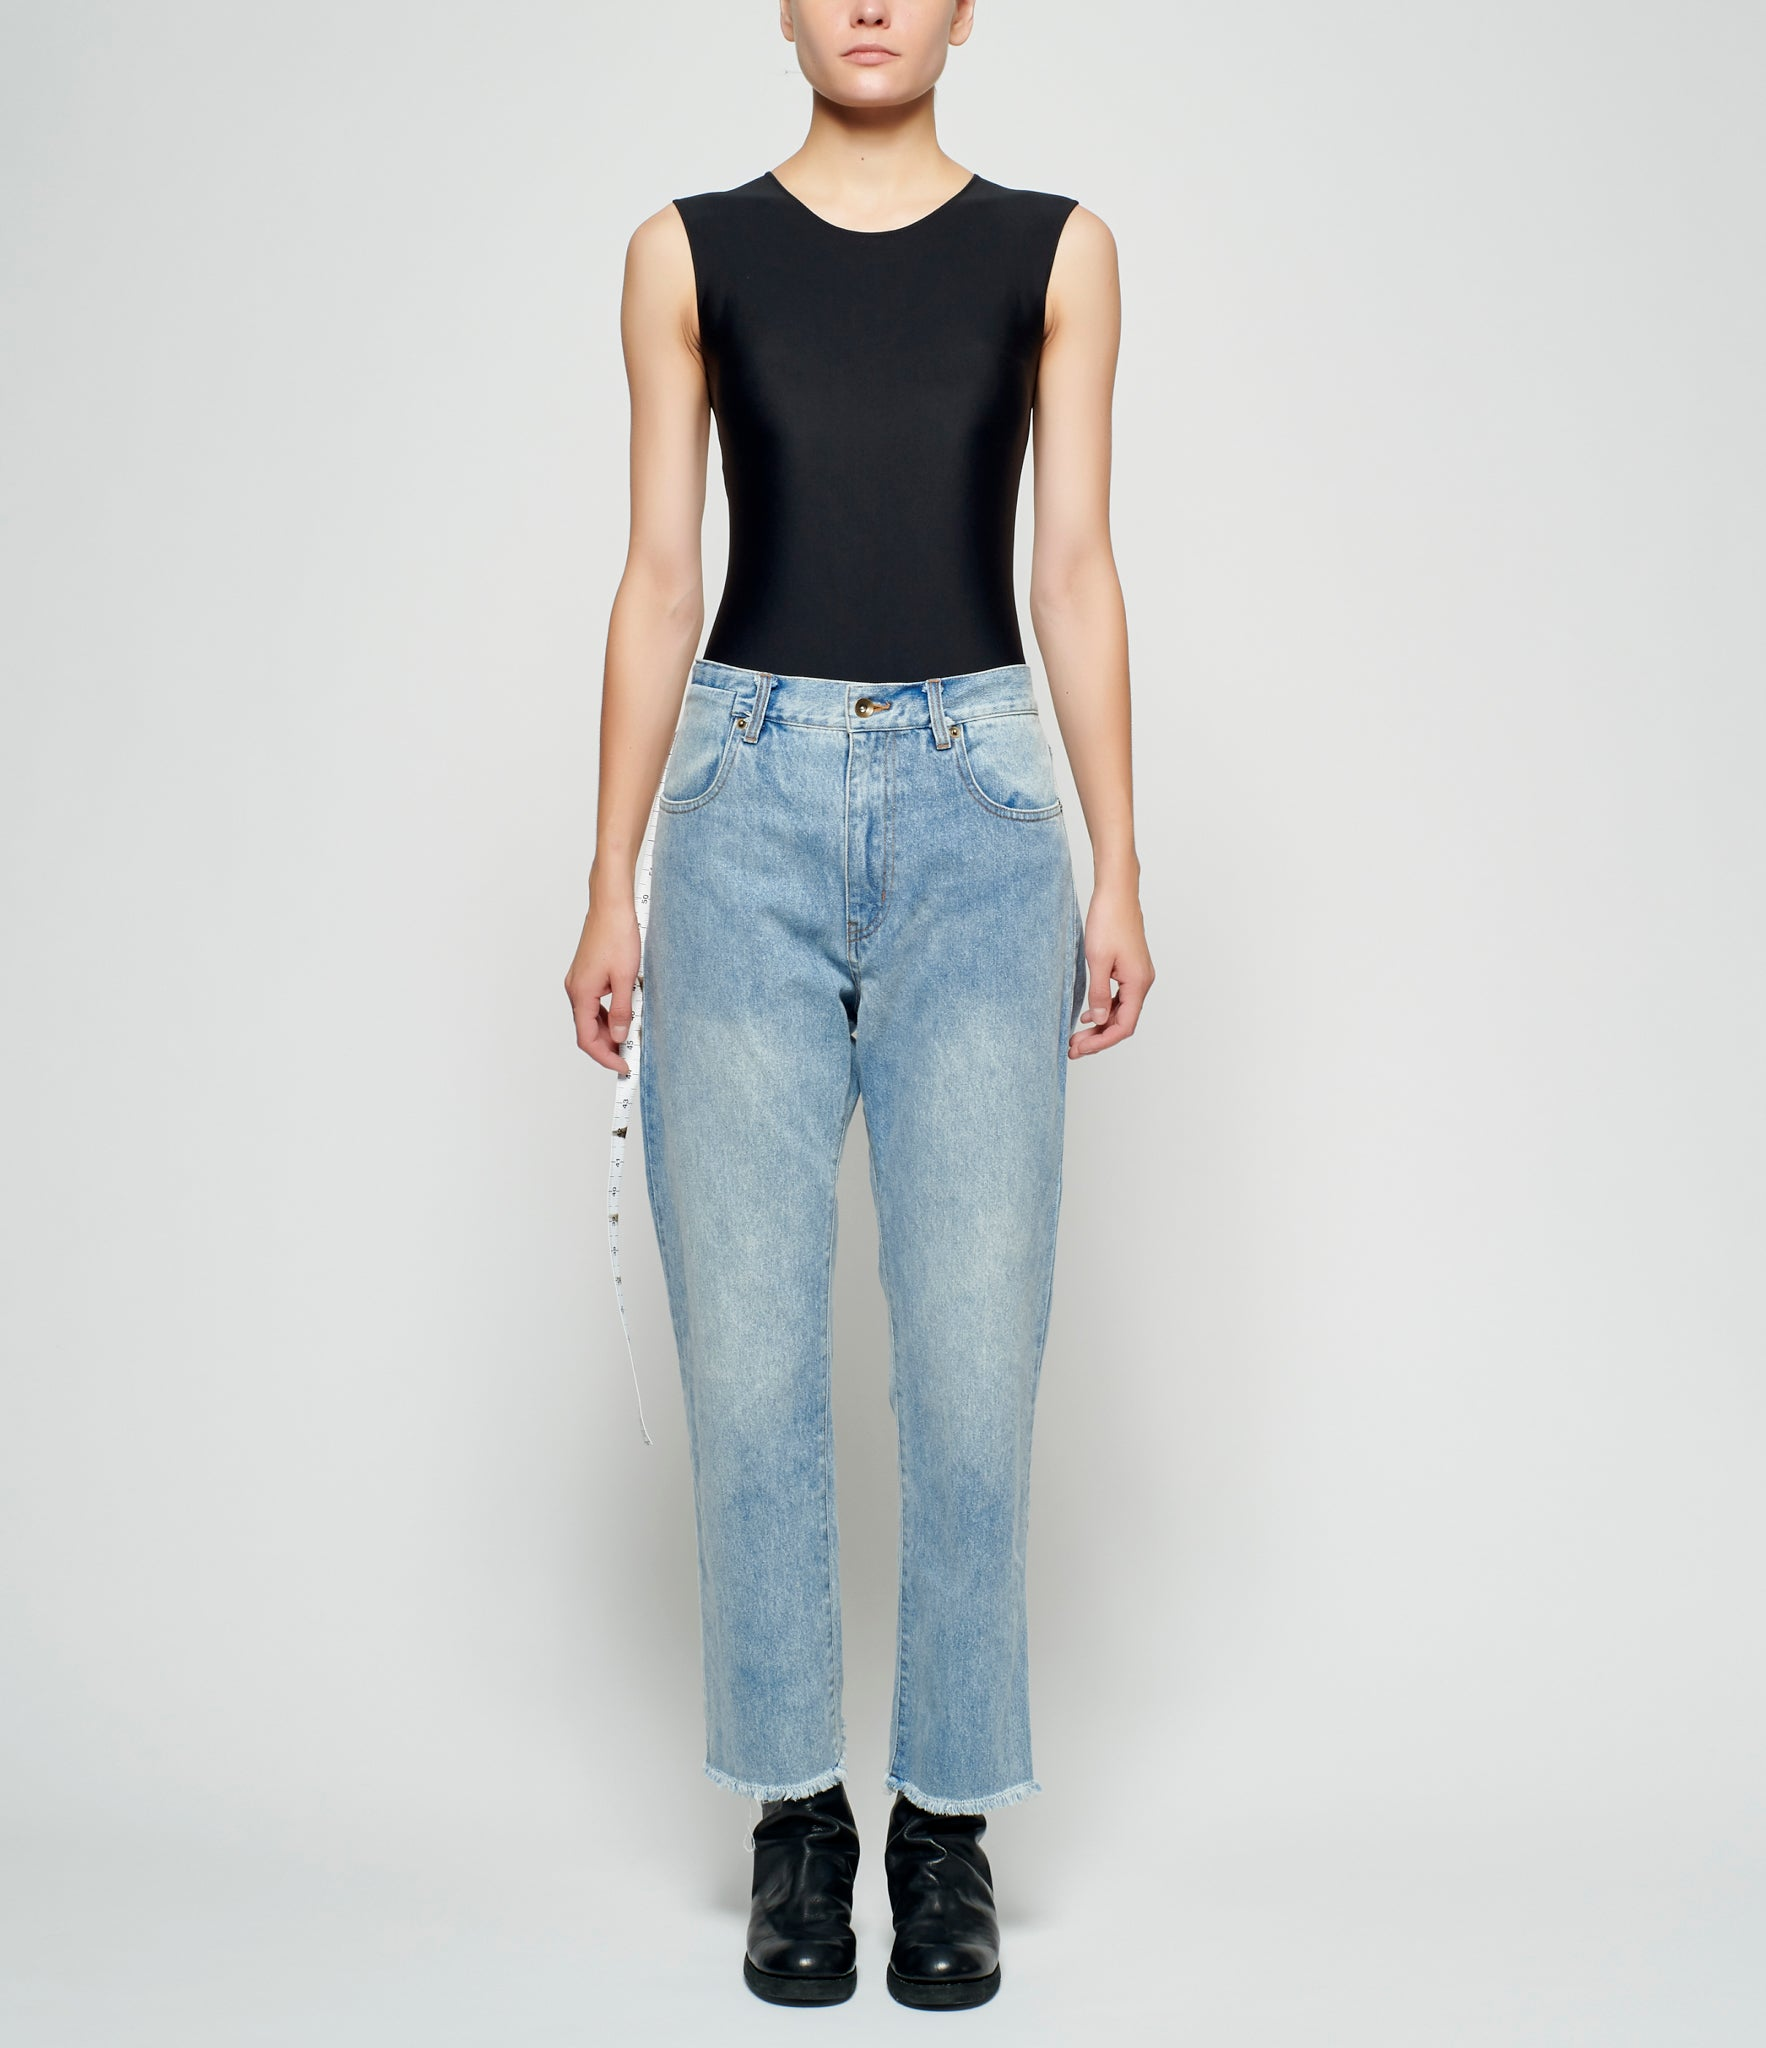 Sagittaire A Measuring Tape Denim Pants